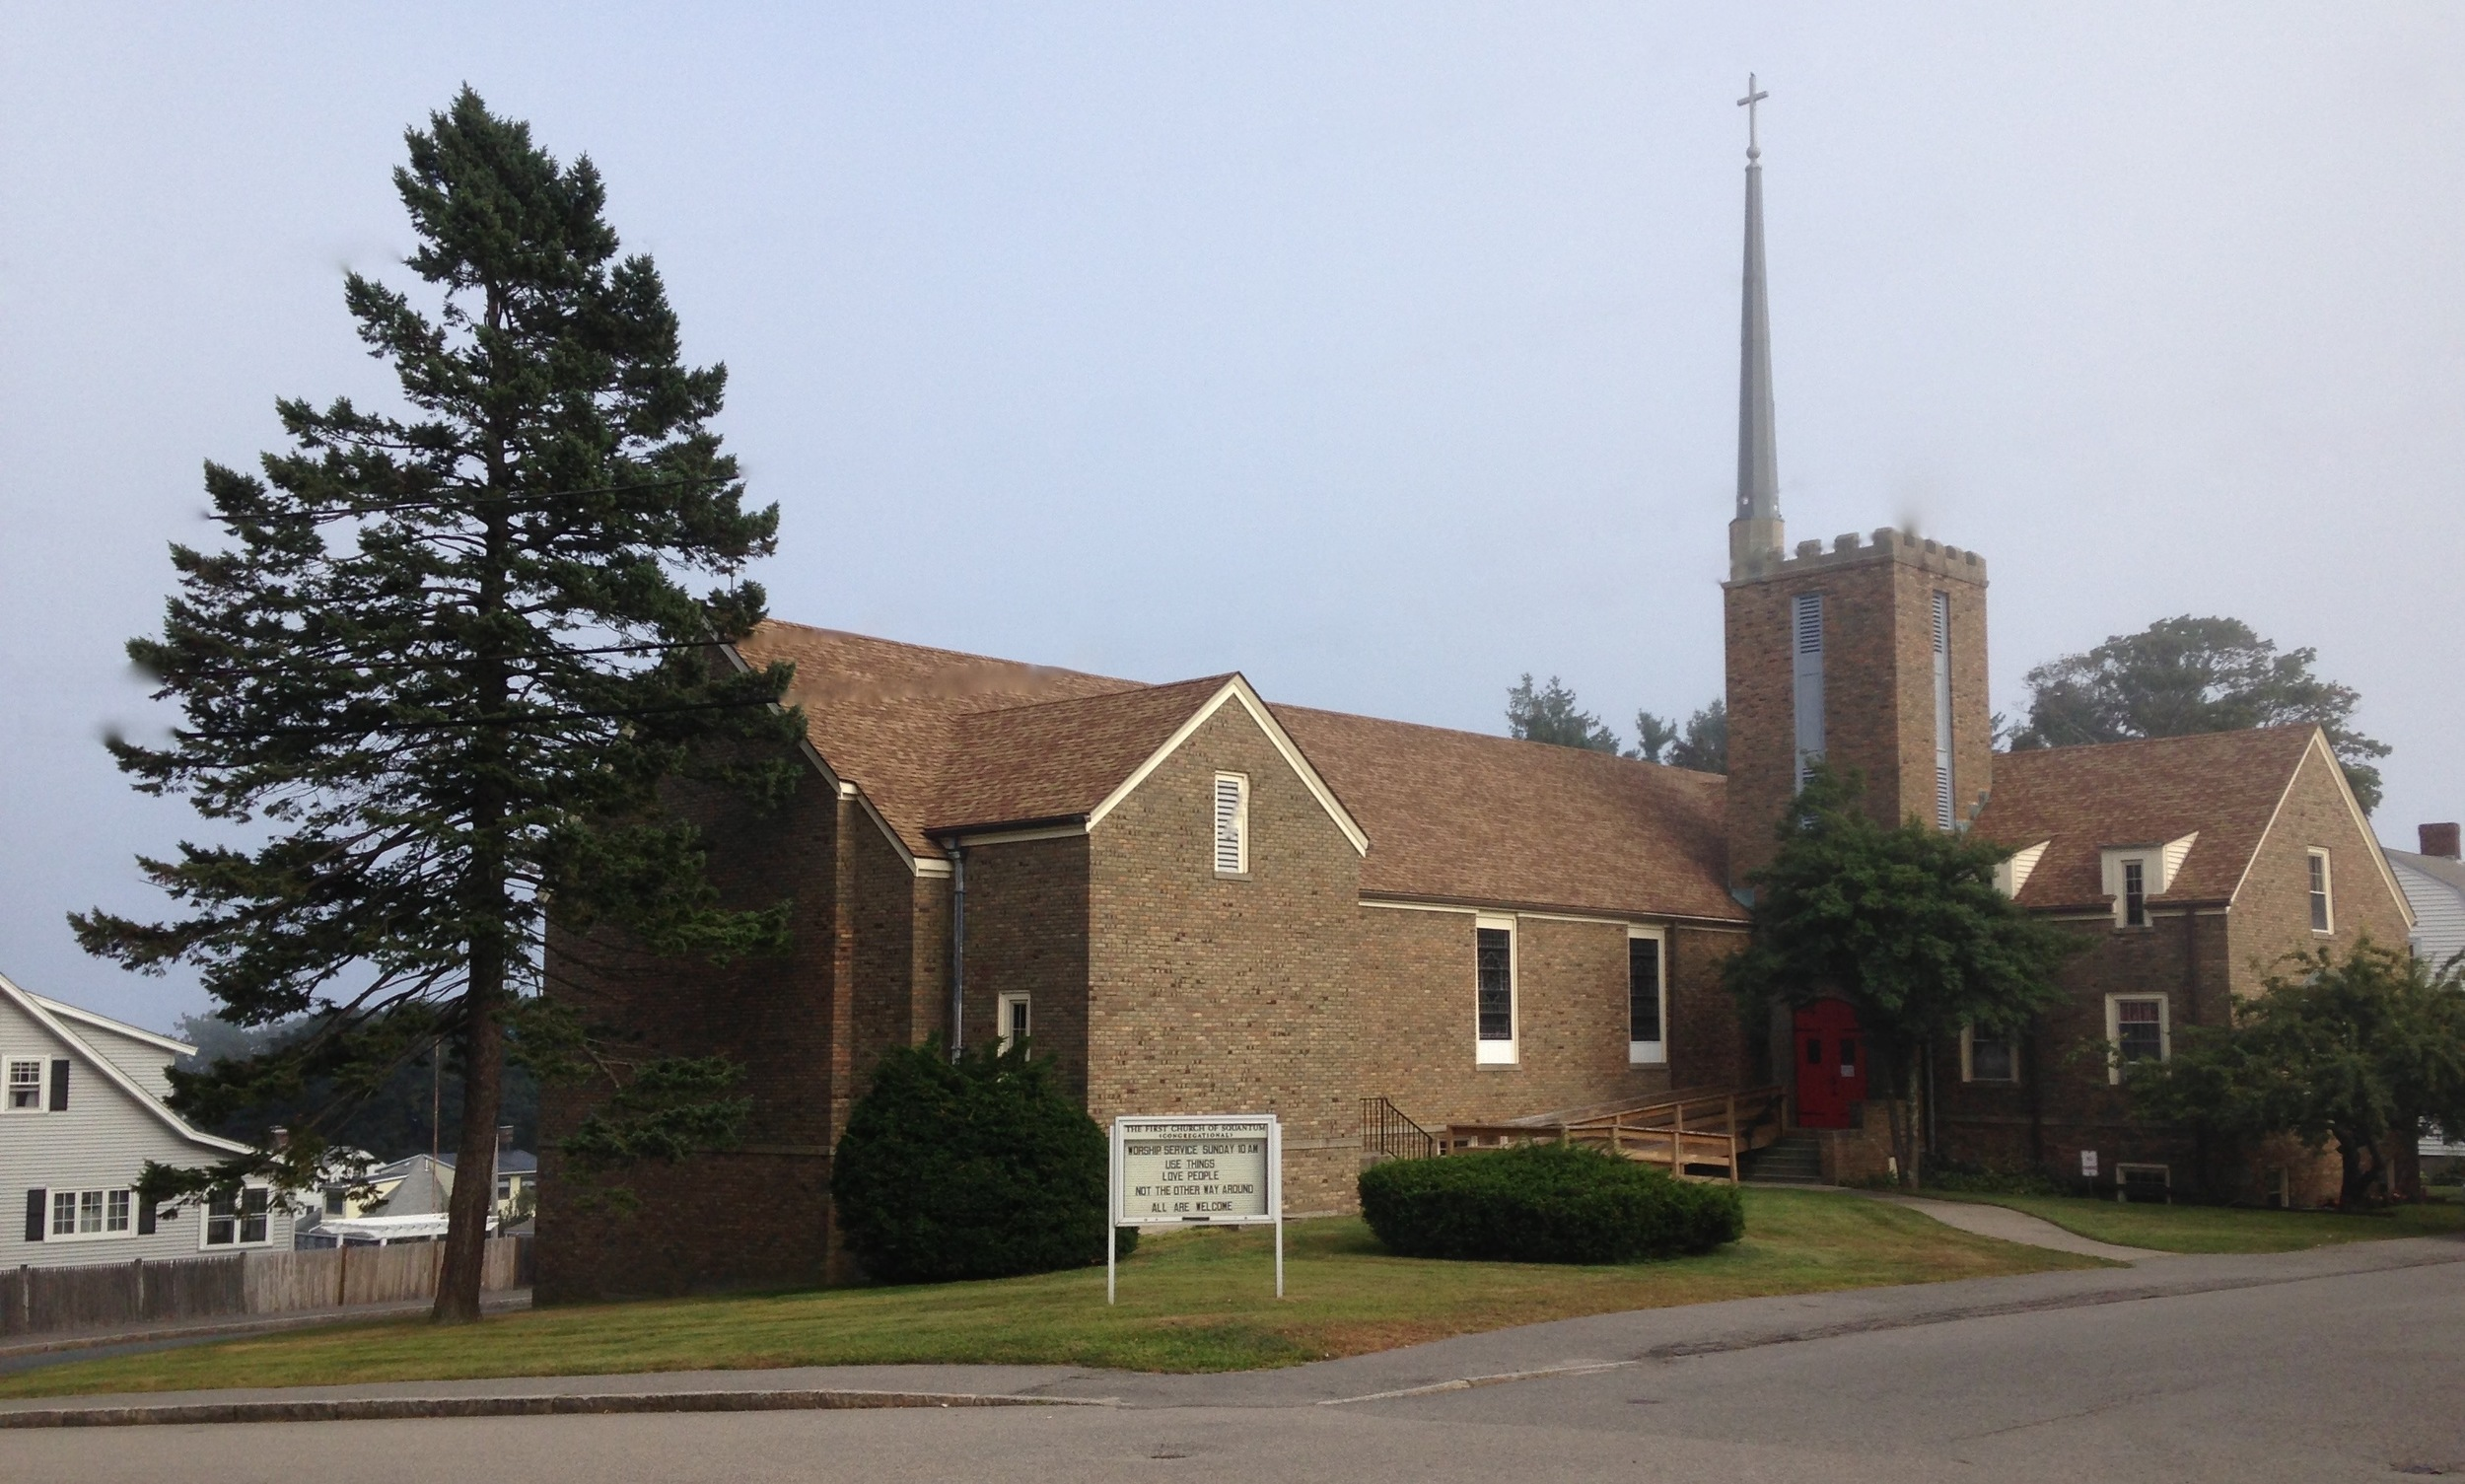 First Church of Squantum (Congregational)